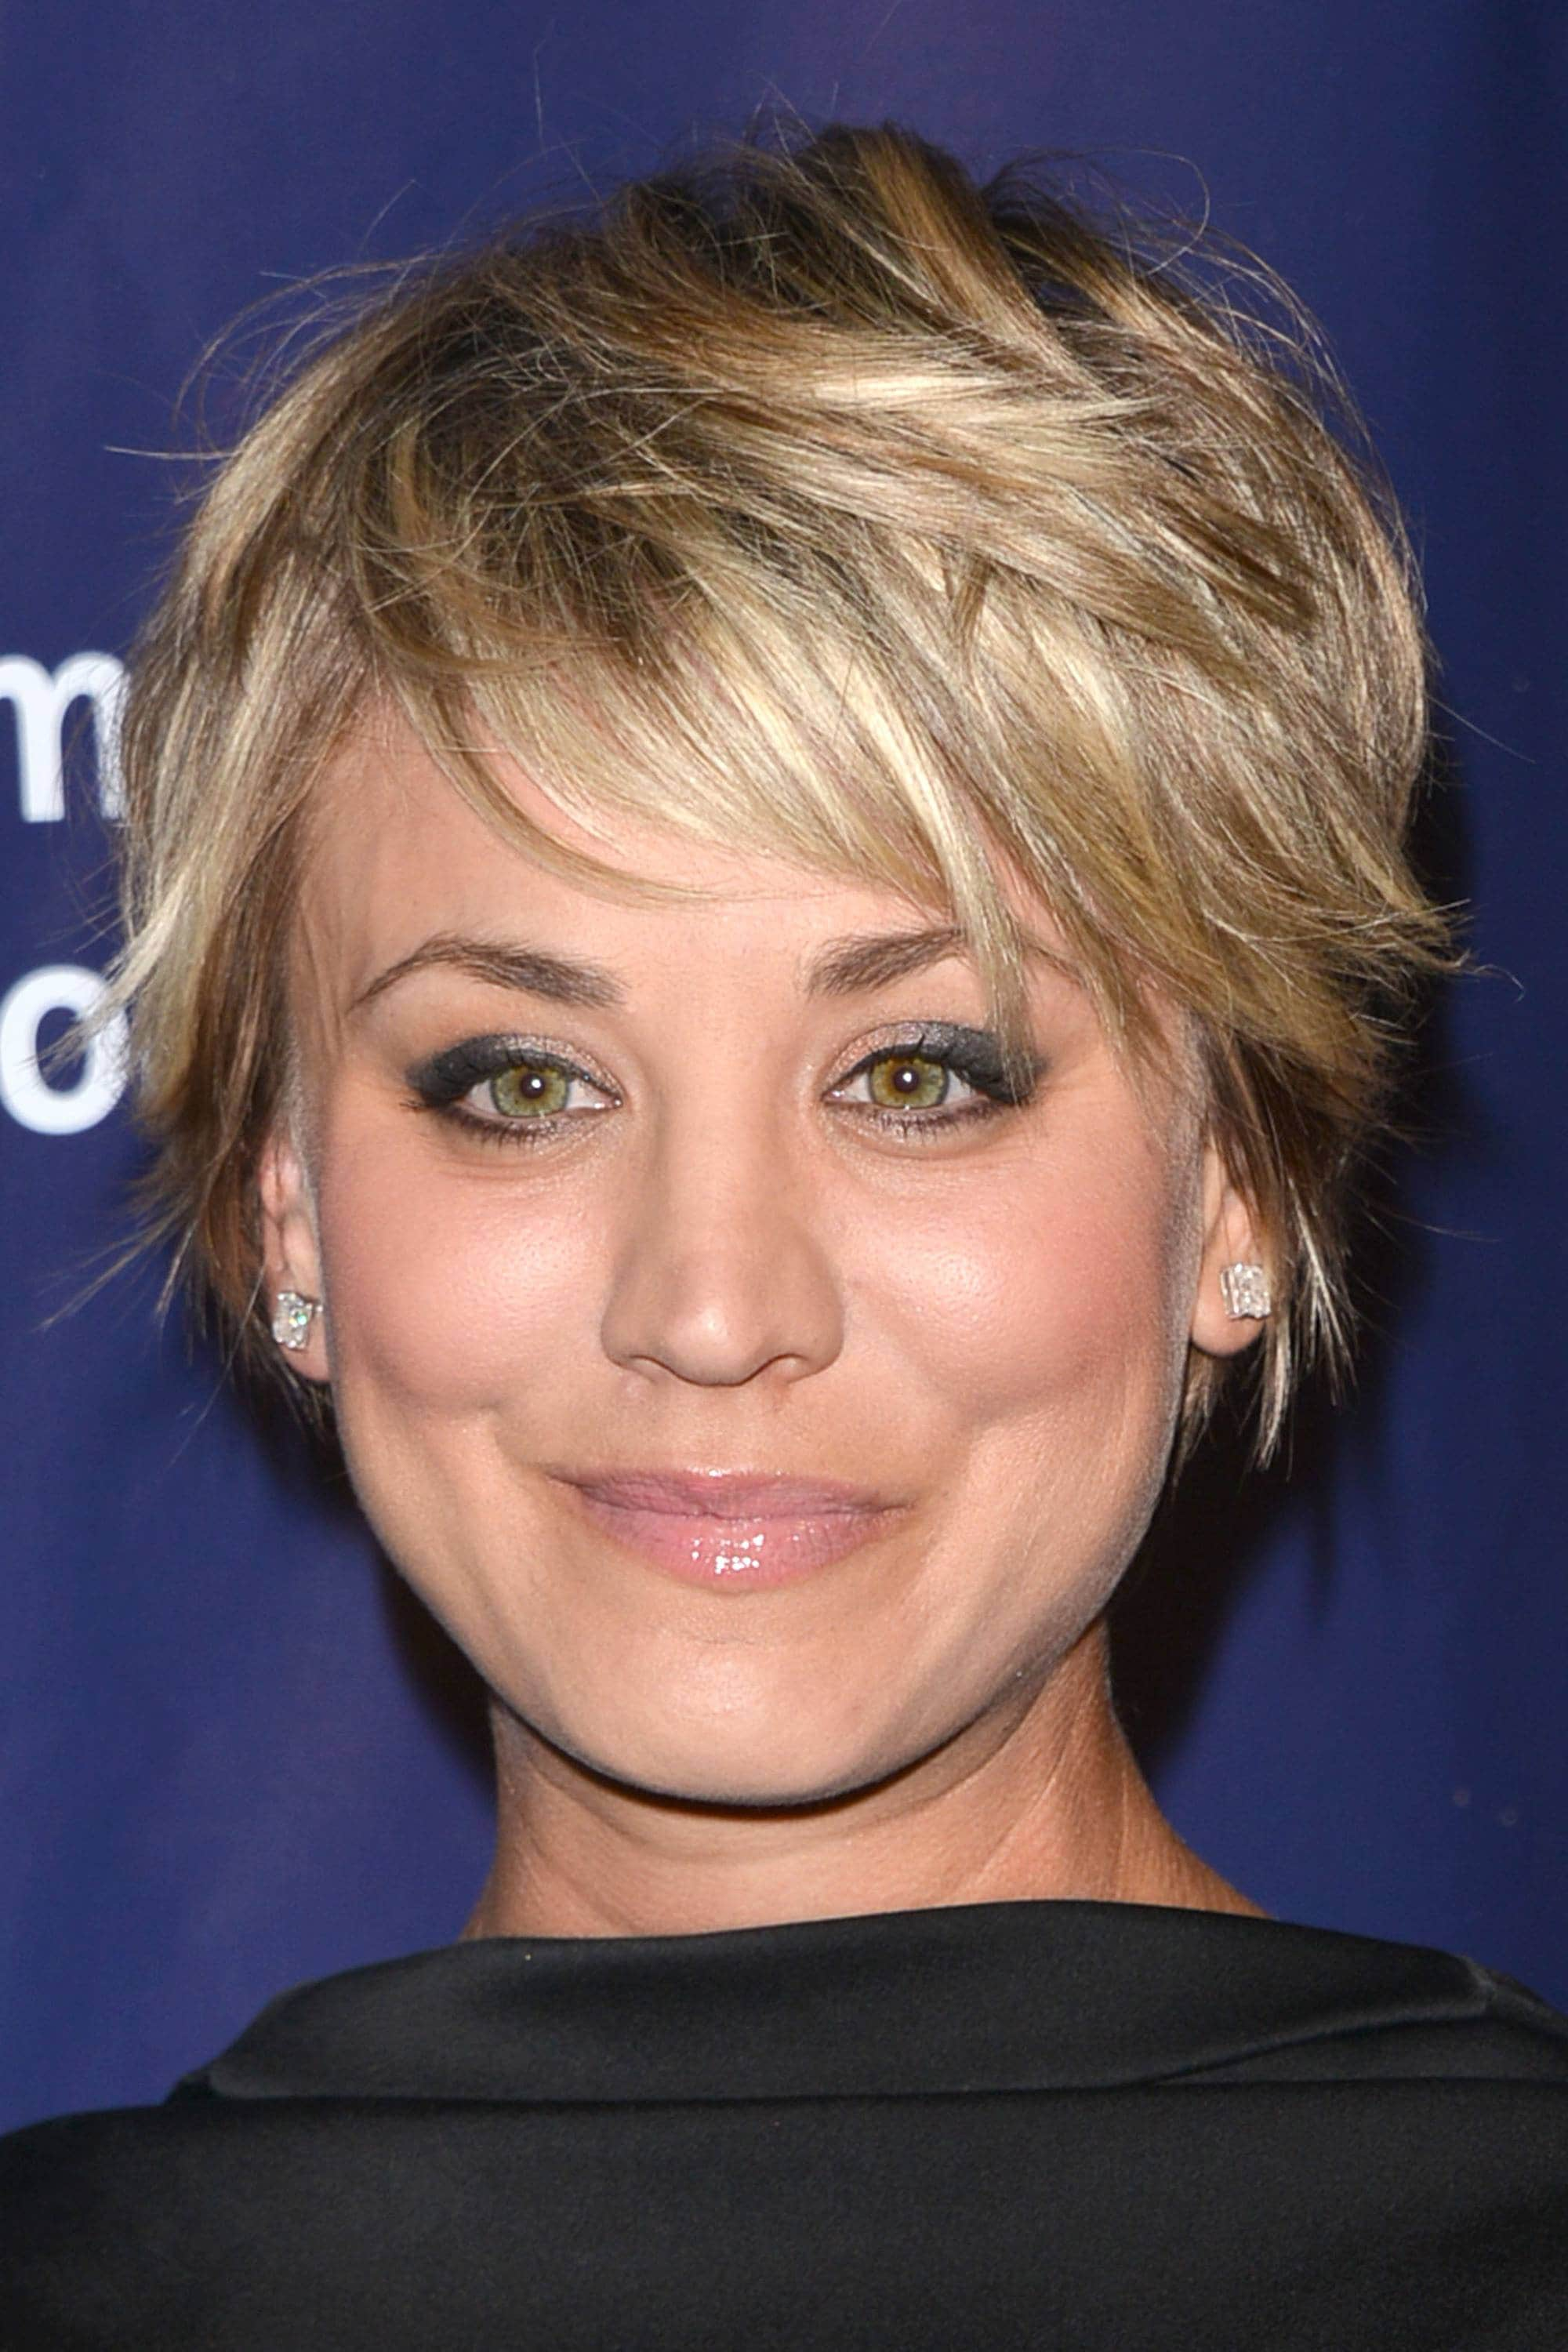 Choppy hair - Kaley Cuoco - Blonde highlighted pixie